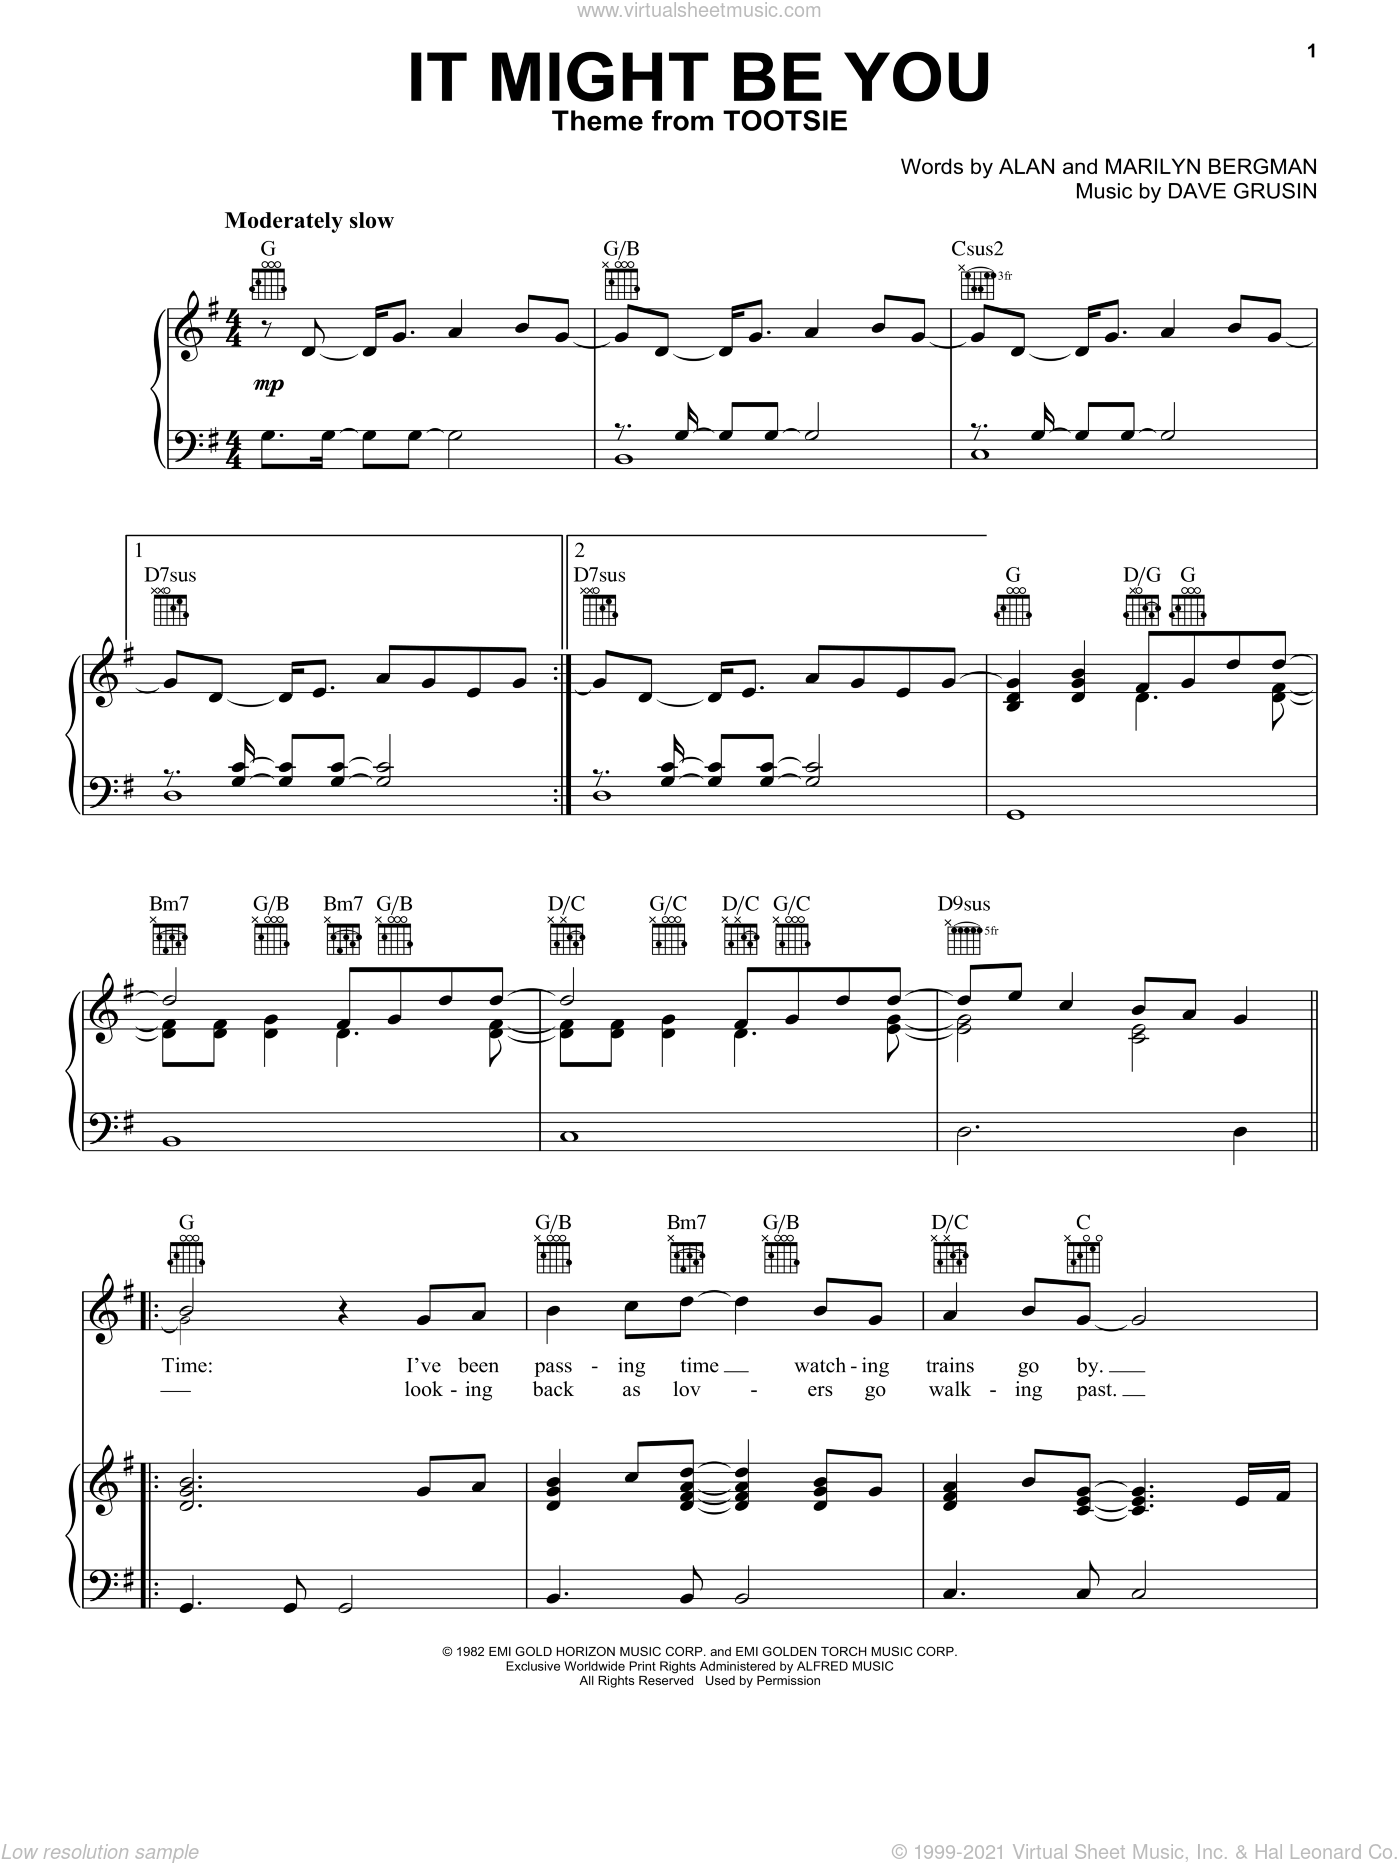 It Might Be You sheet music for voice, piano or guitar by Marilyn Bergman, Alan and Dave Grusin, intermediate skill level